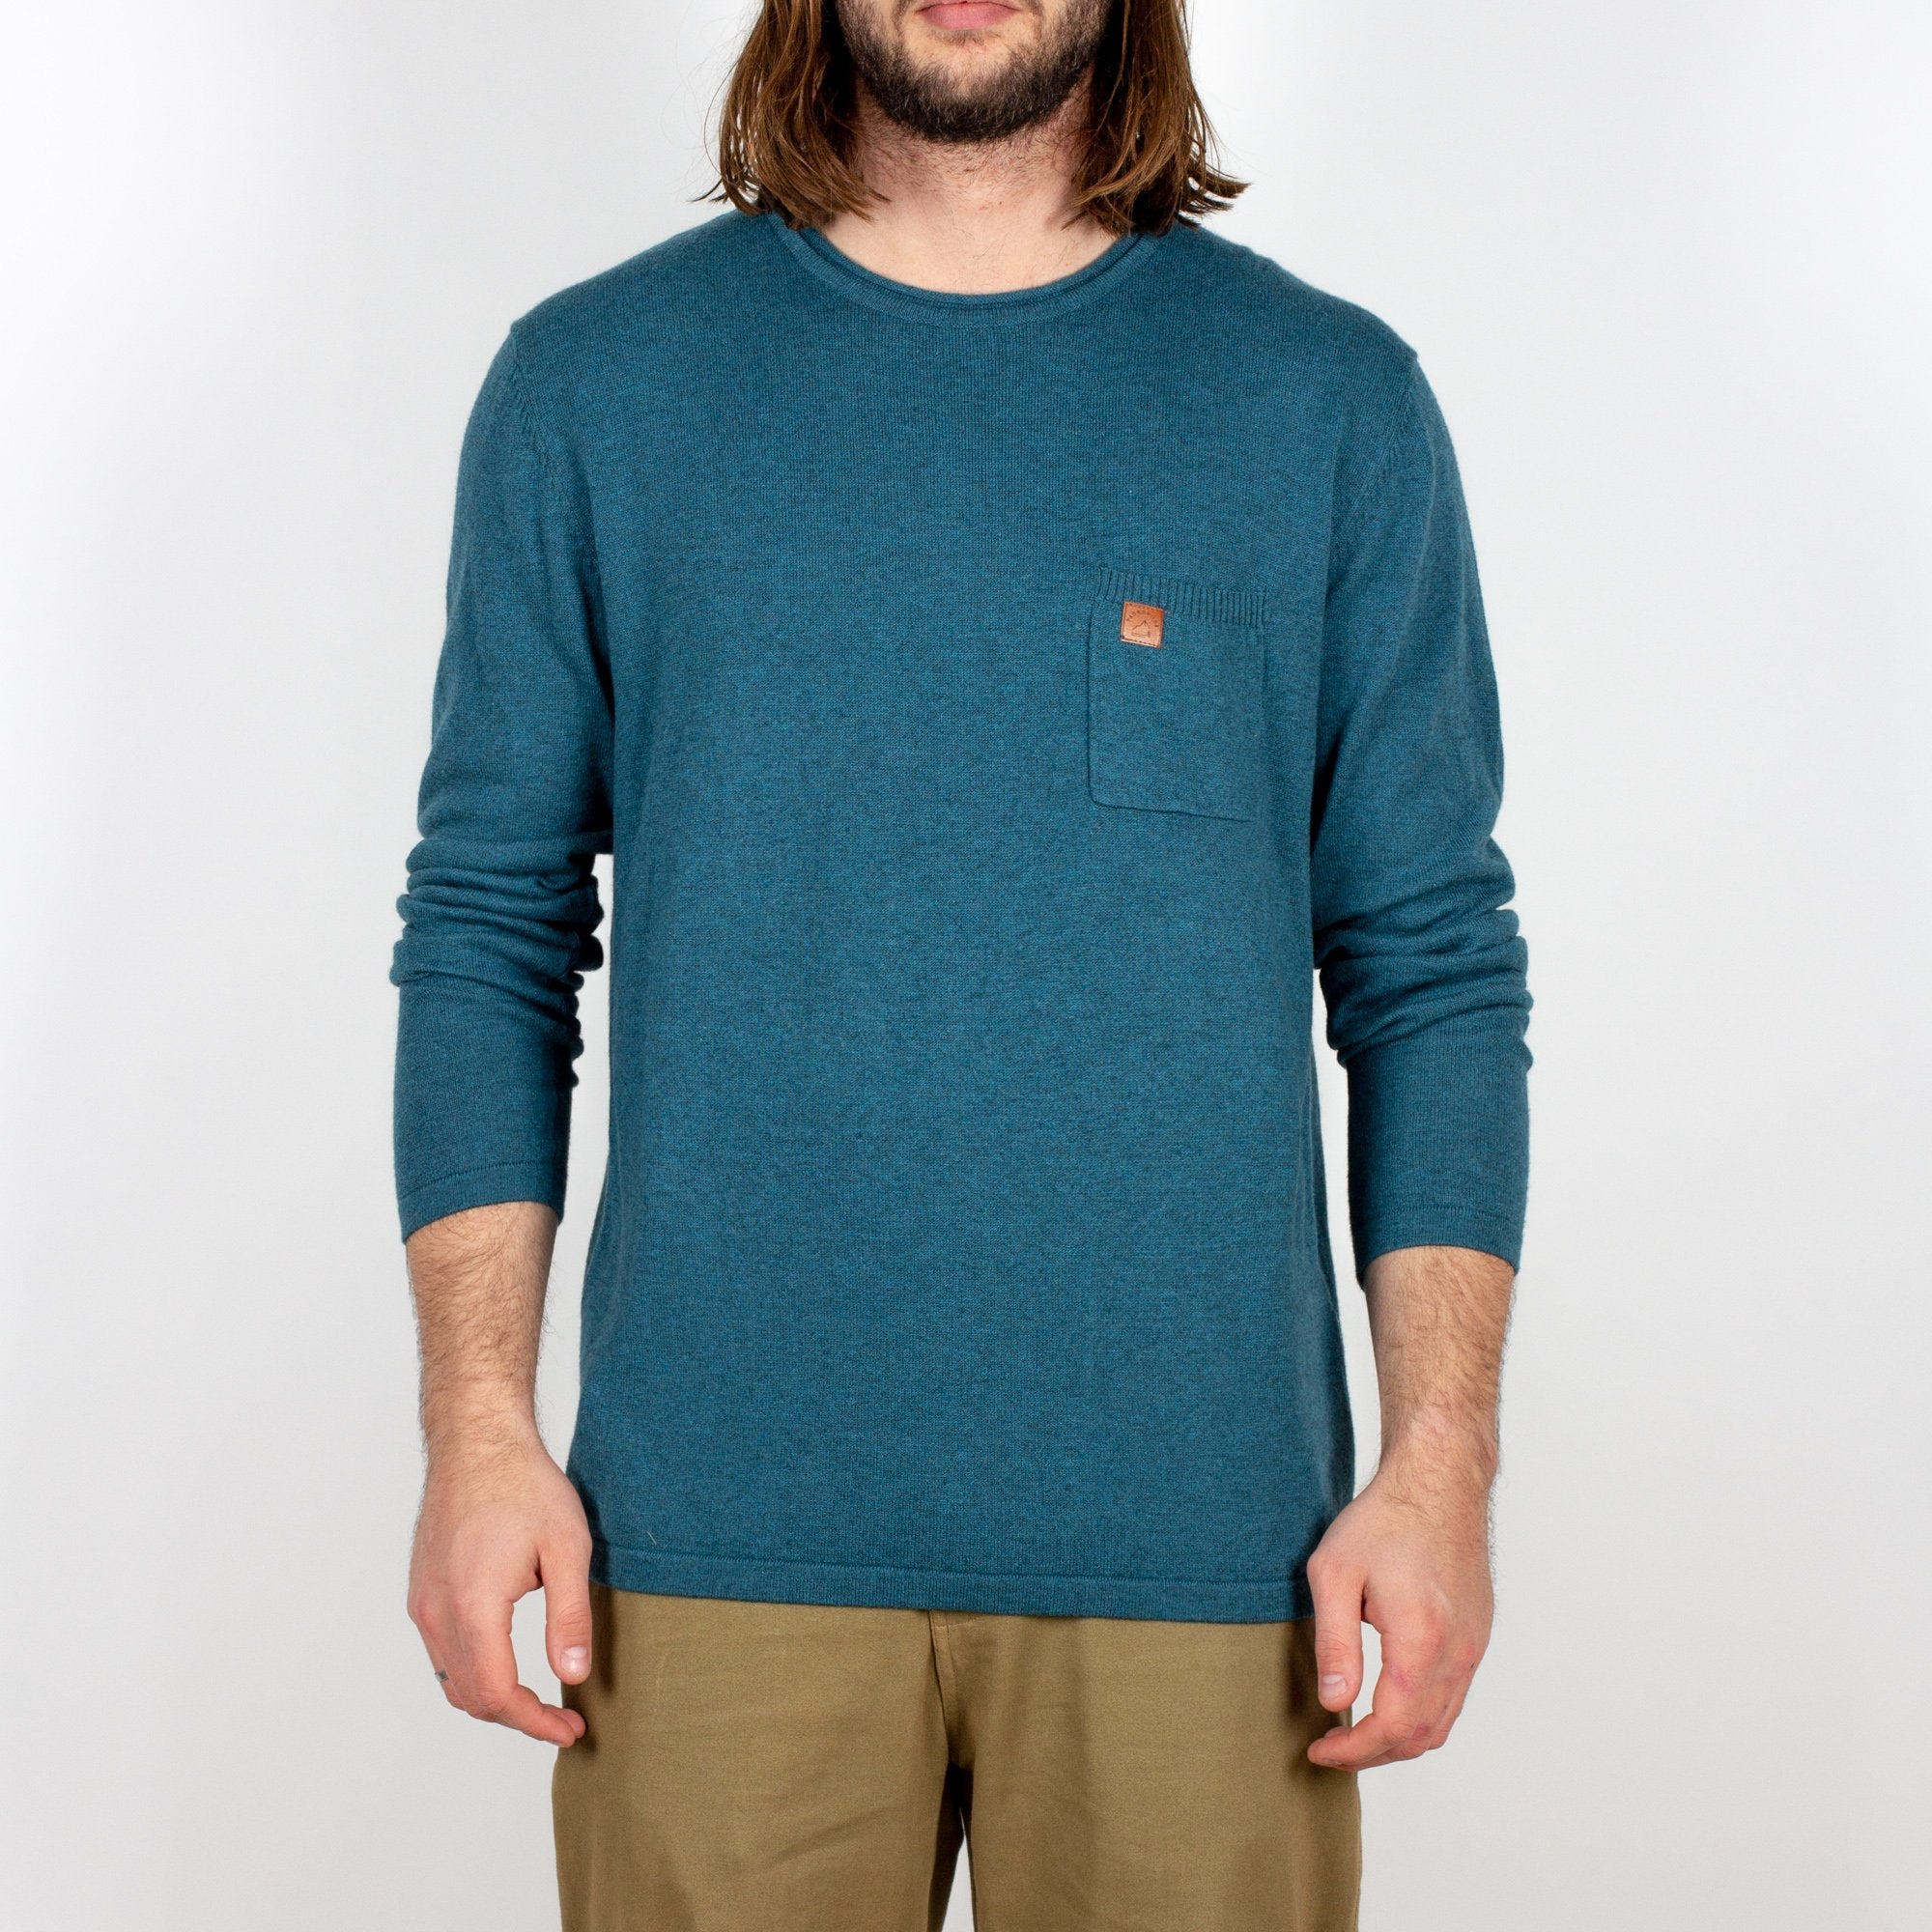 Himalayas Knitted Sweater - Teal image 3